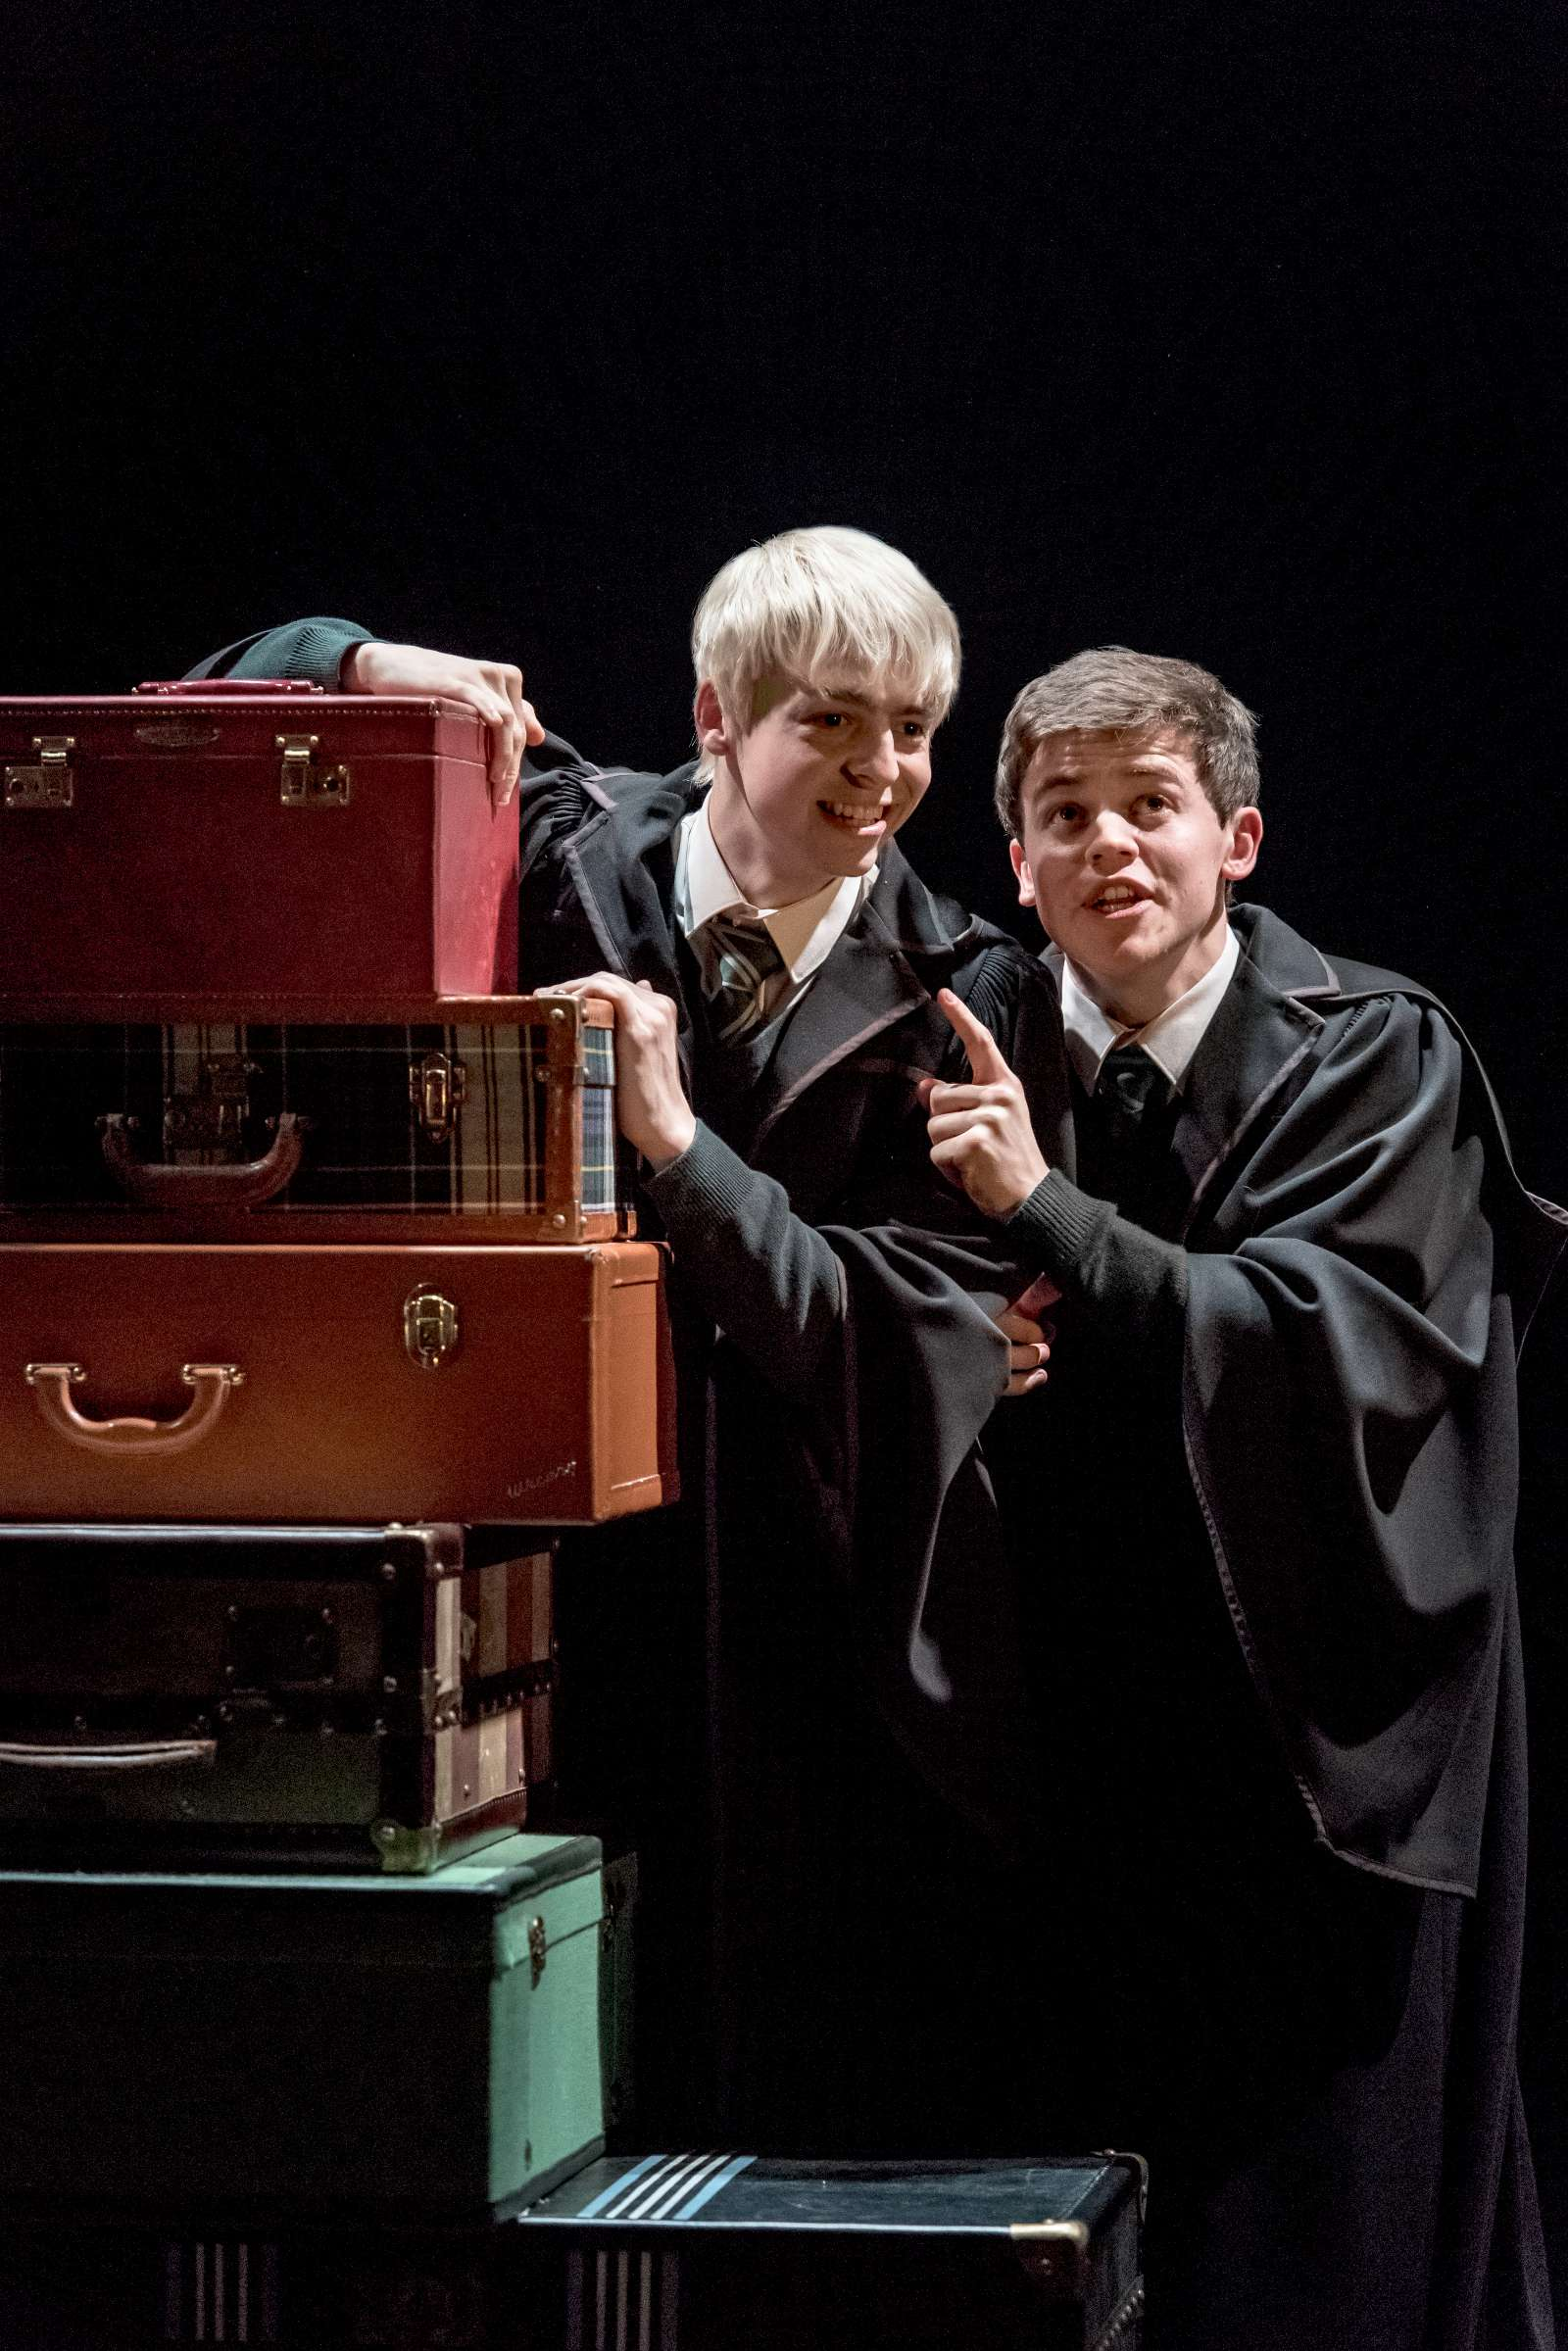 The Harry Potter universe still can't translate its gay subtext to text. It's a problem.